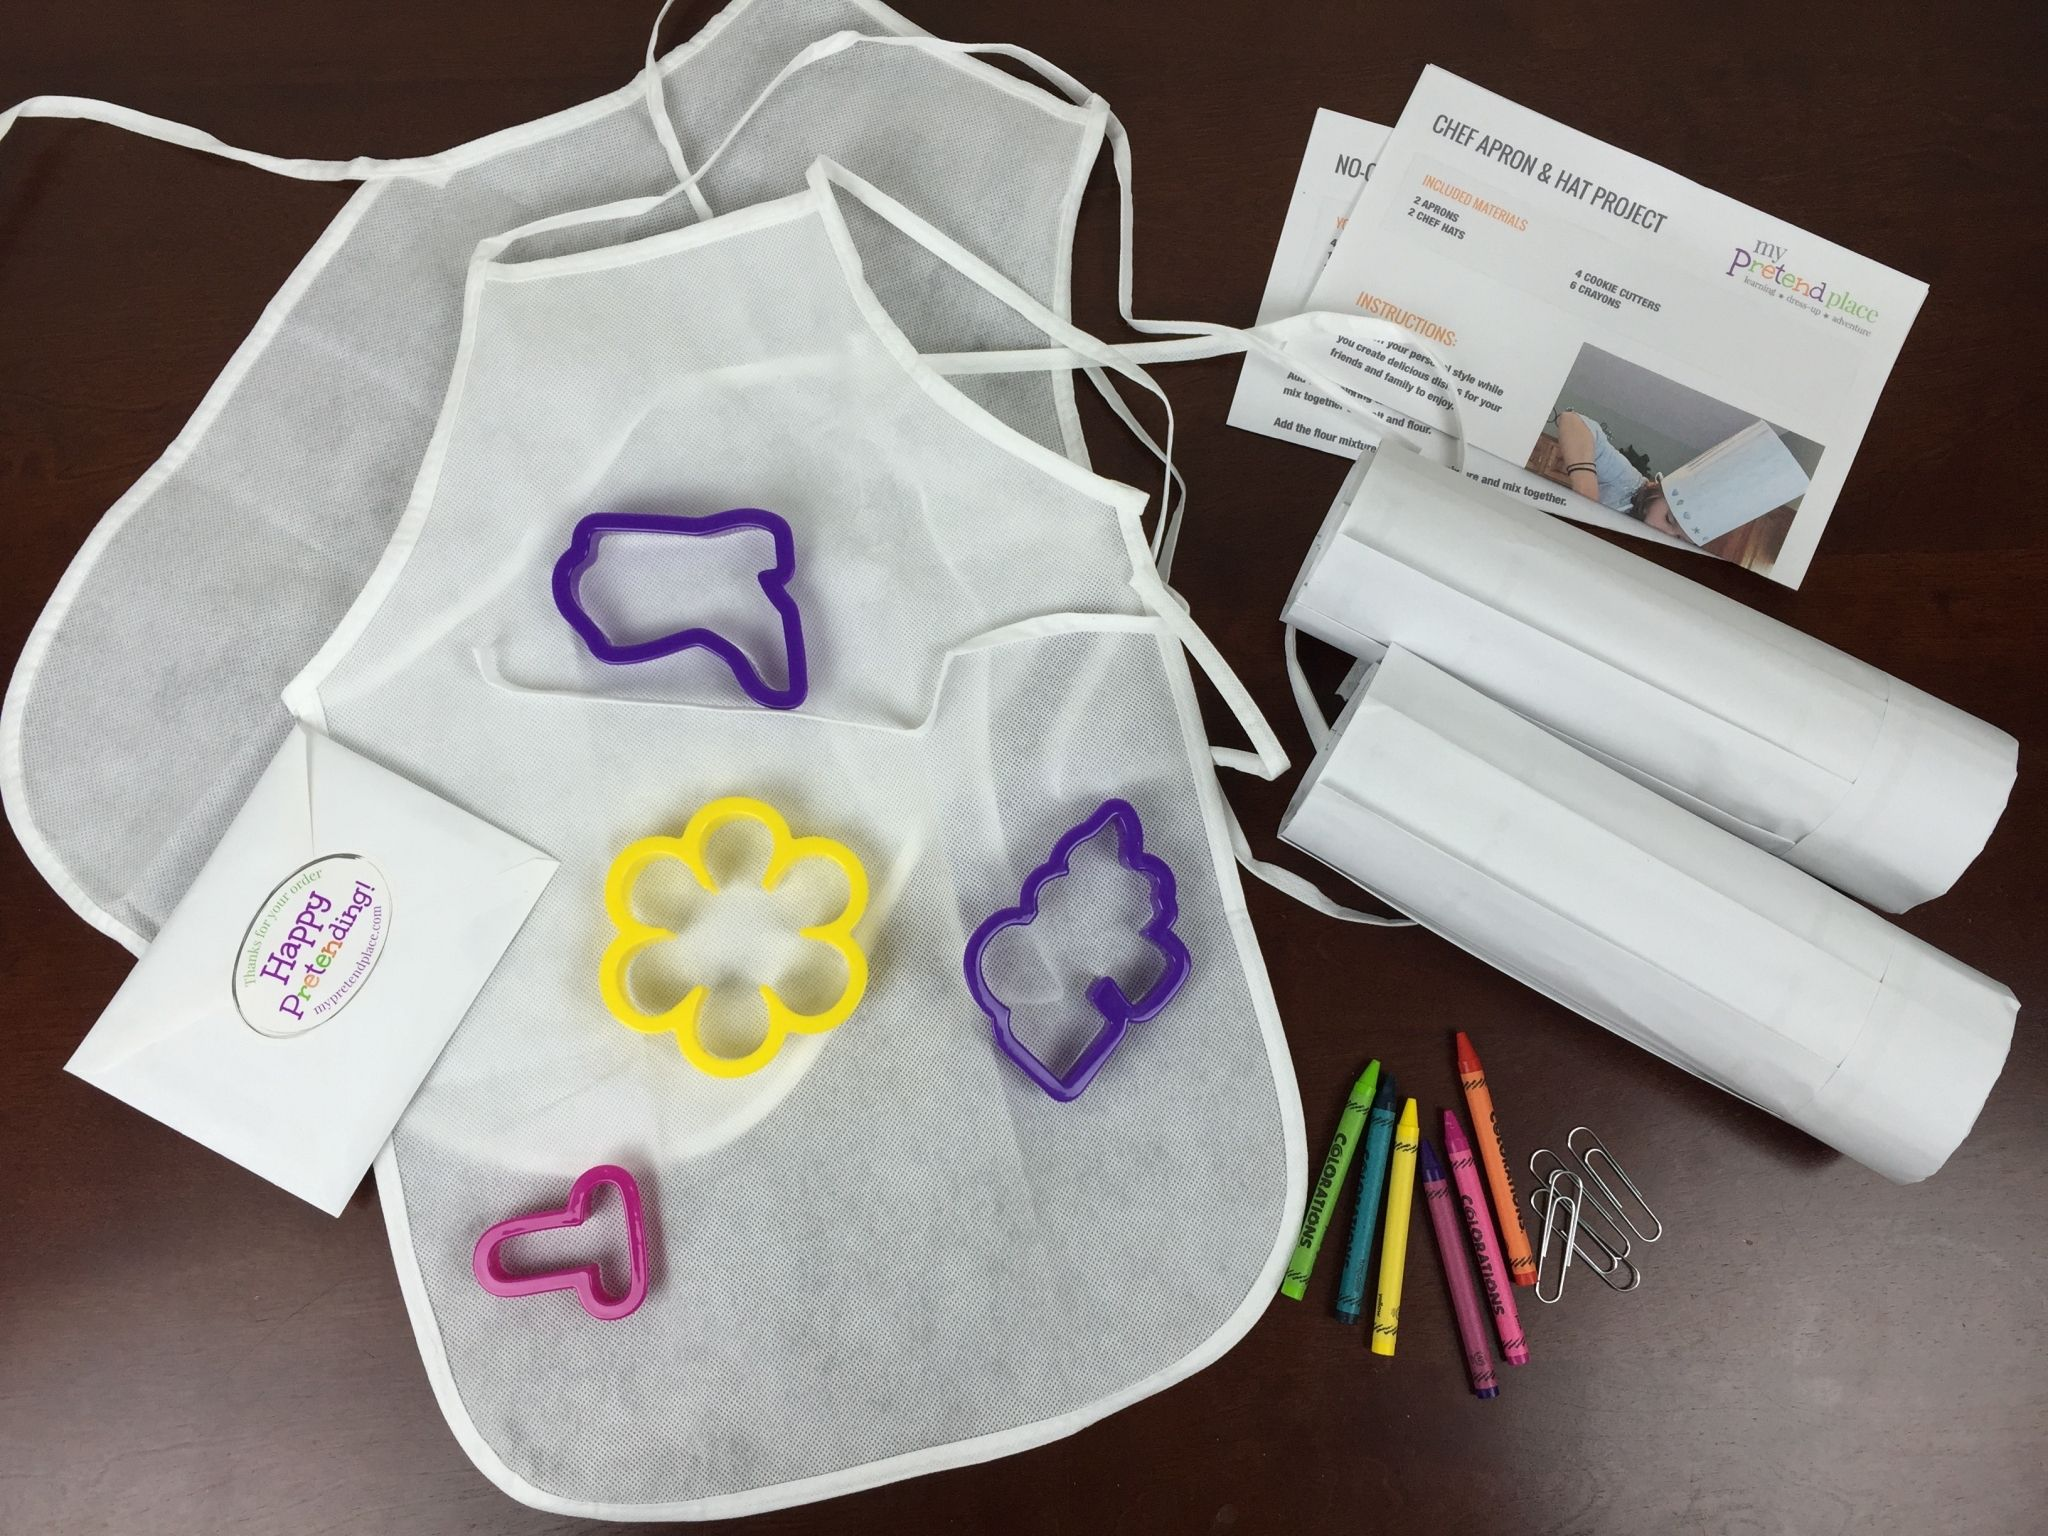 August 2015 My Pretend Place Play Projects Subscription Box Review & Coupon - http://hellosubscription.com/2015/08/august-2015-pretend-place-play-projects-subscription-box-review-coupon/